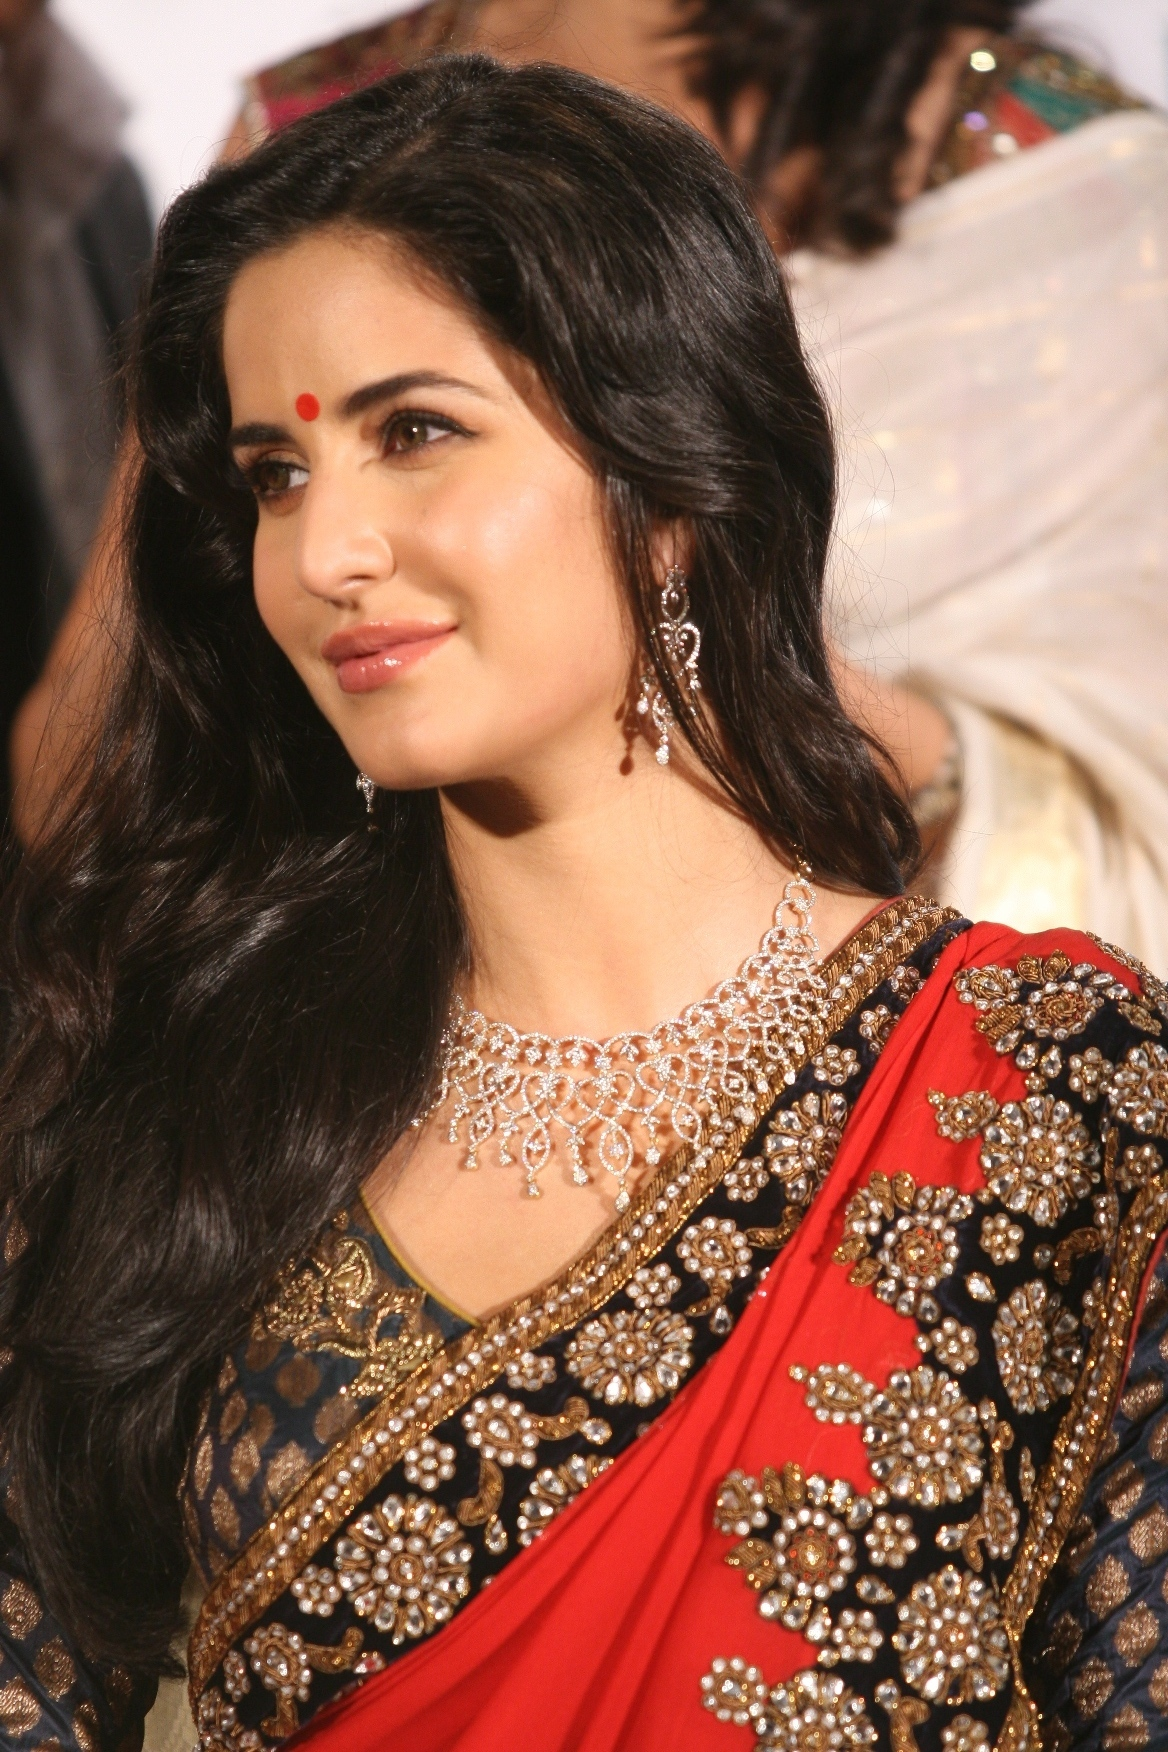 Katrina Kaif -Self Made Person